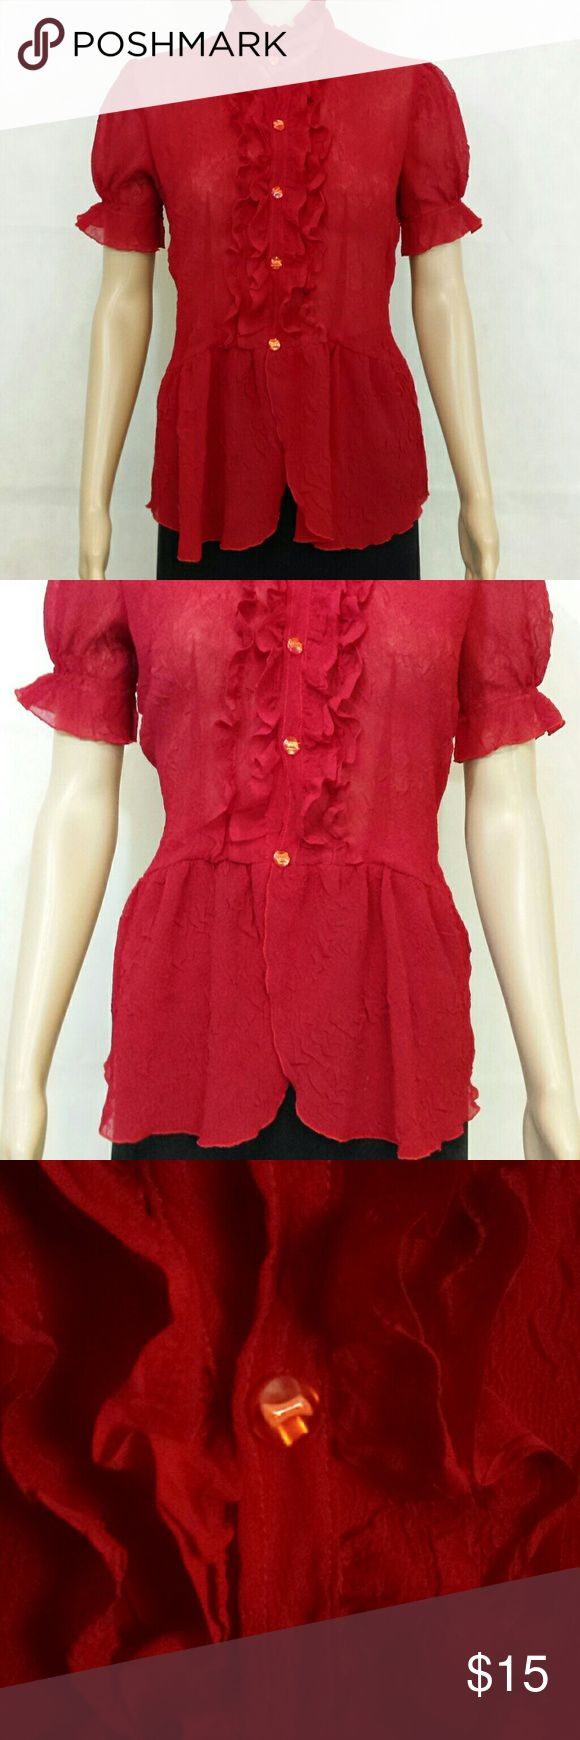 Ladies Short Sleeve Top/Blouse Sheer, ruffled 5 button placket front, with a gentle peblum bottom. Blouse is quite fitted, has a  pleated stand up collar, and  slightly puffed elastic gathered short sleeves. The blouse is very sheer so you would probably need to wear a camisole underneath. The color is a very deep red closer to picture number 3. And the blouse has really cute buttons as shown in picture 3 and 4, there are little bows inside of the button. Like new condition. Tops Blouses